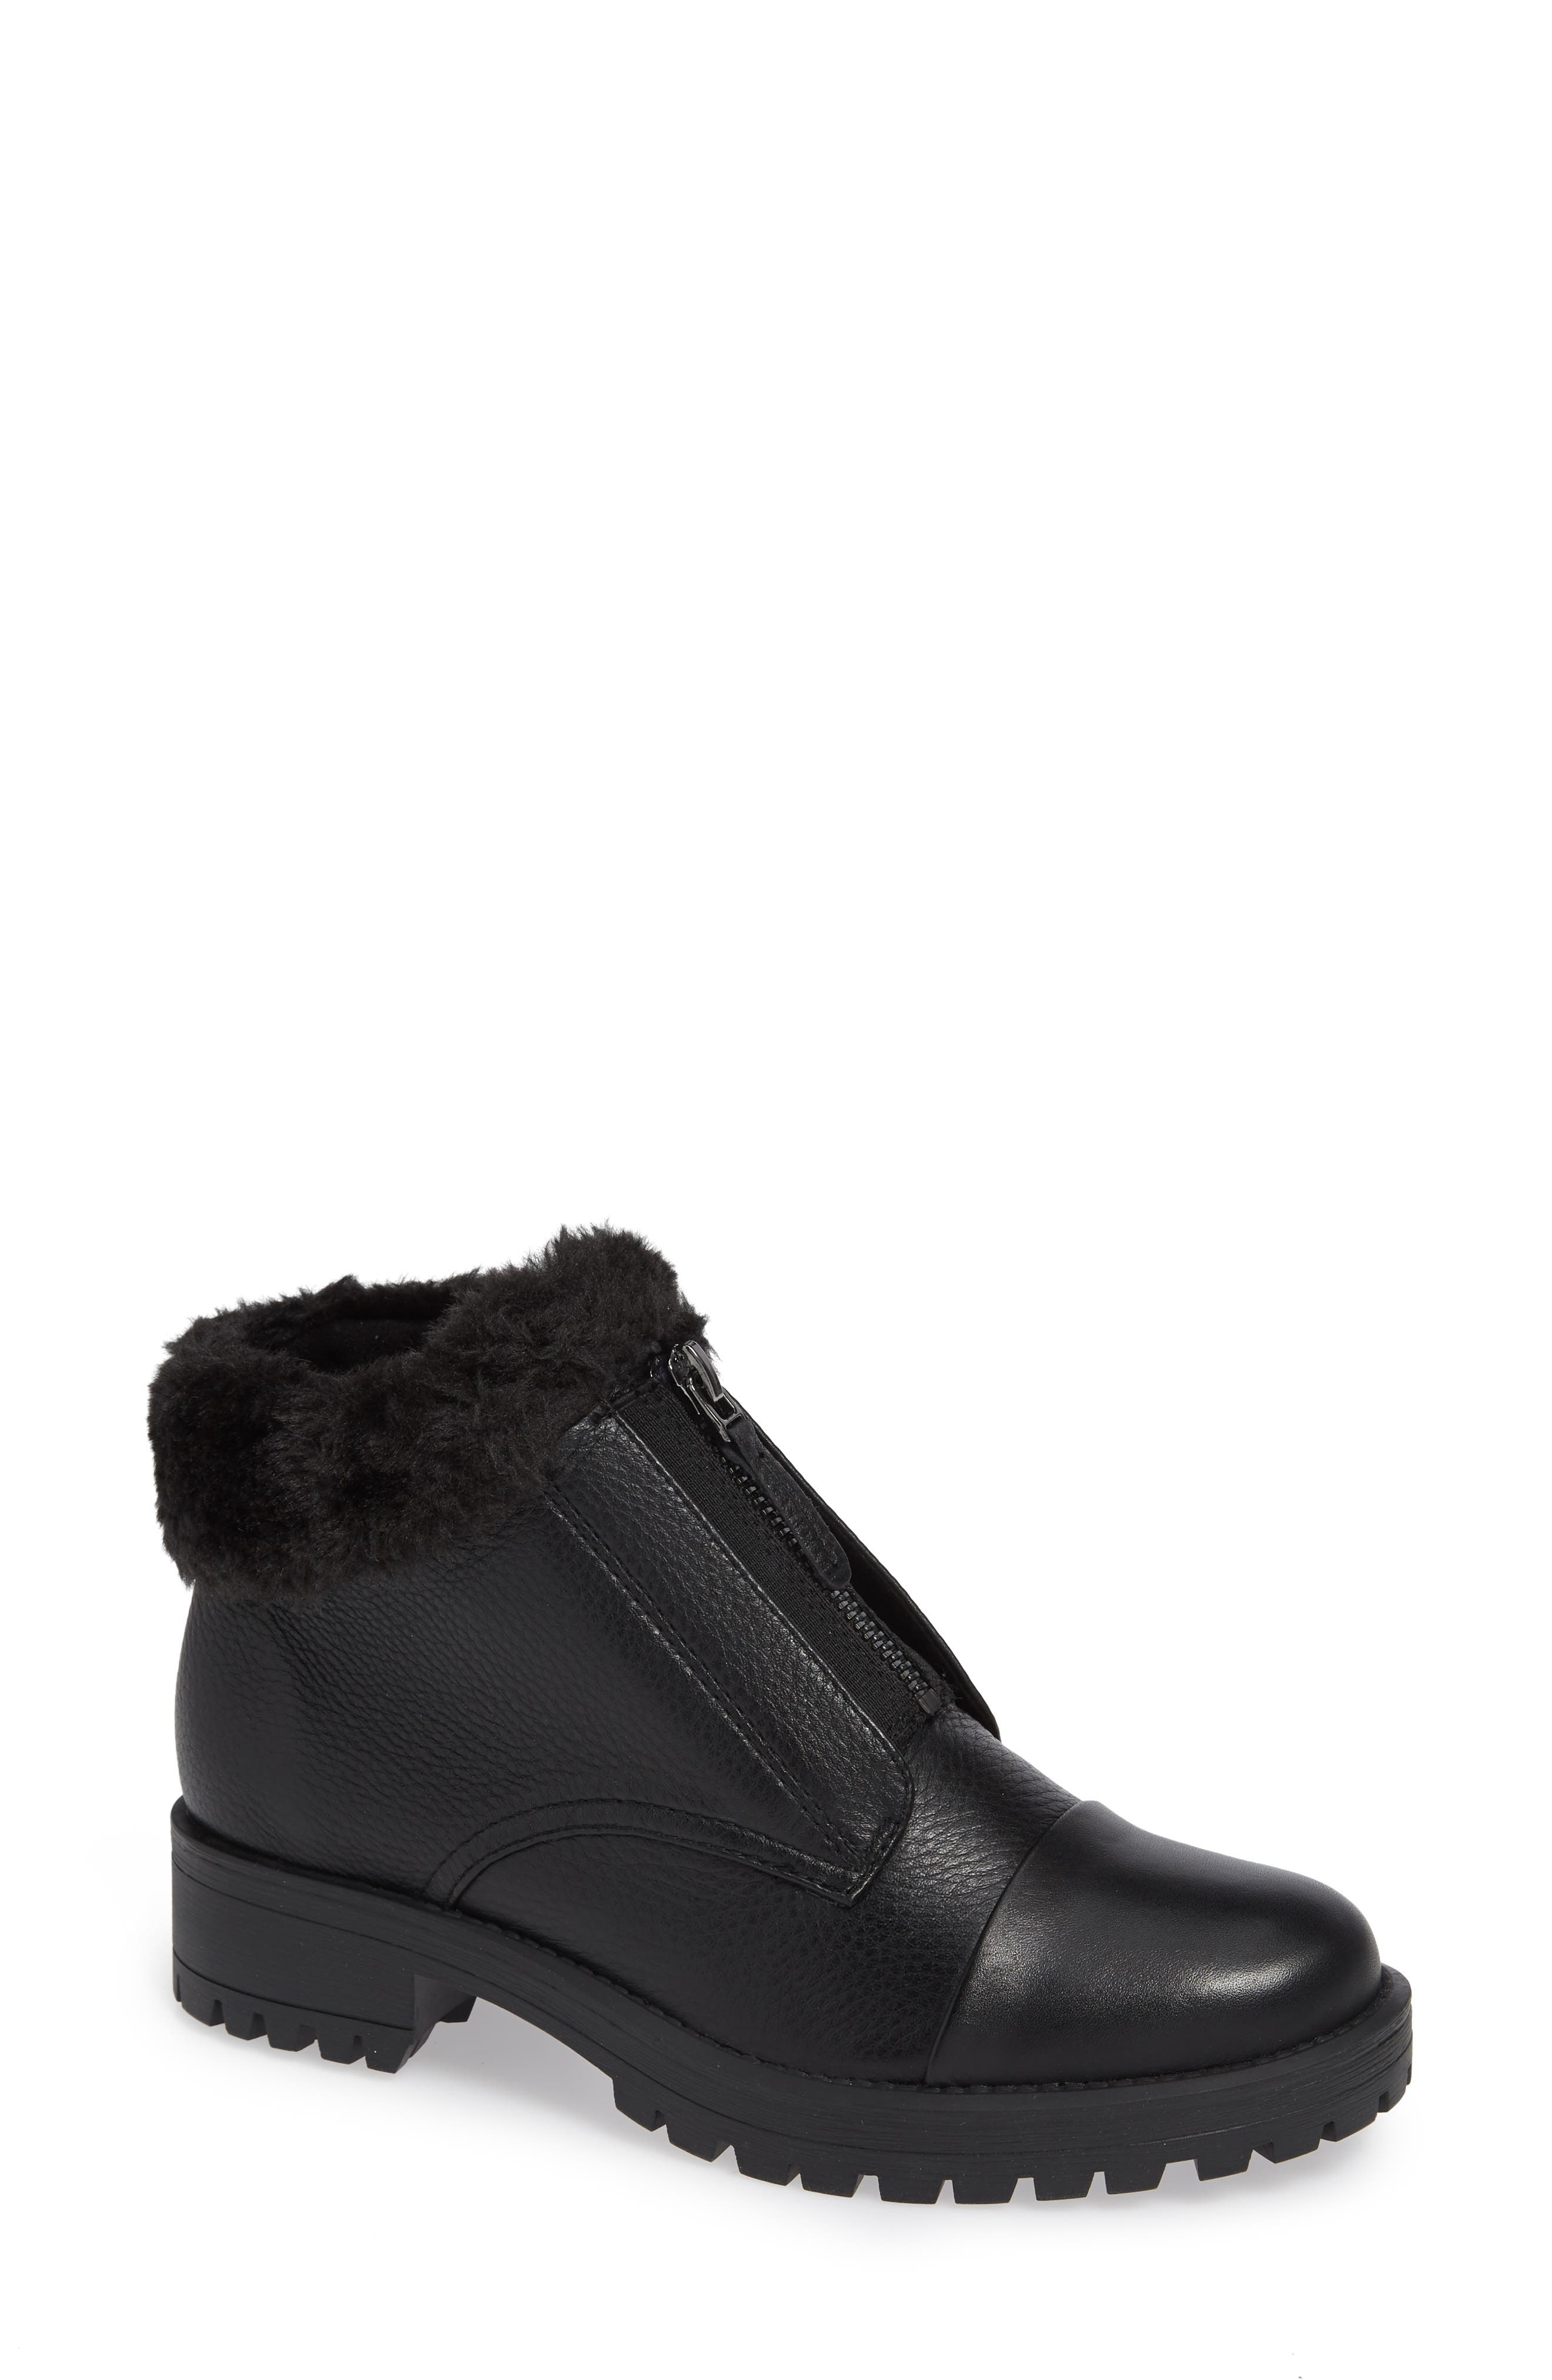 Yesnia Bootie,                             Main thumbnail 1, color,                             BLACK